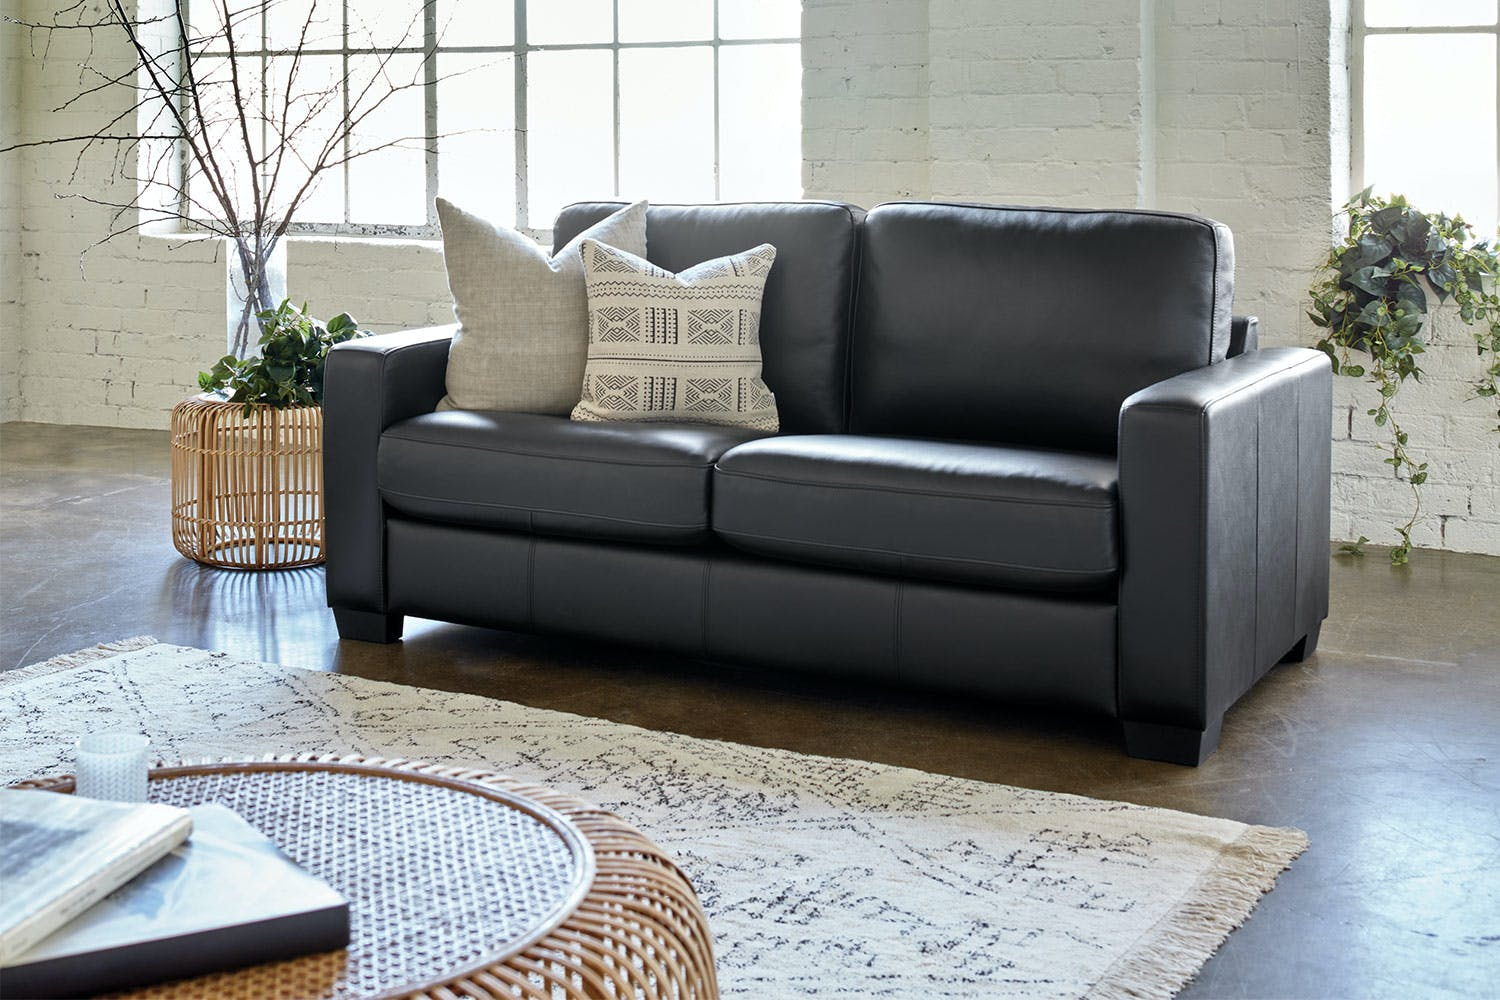 Image of Ariel Leather Sofa Bed